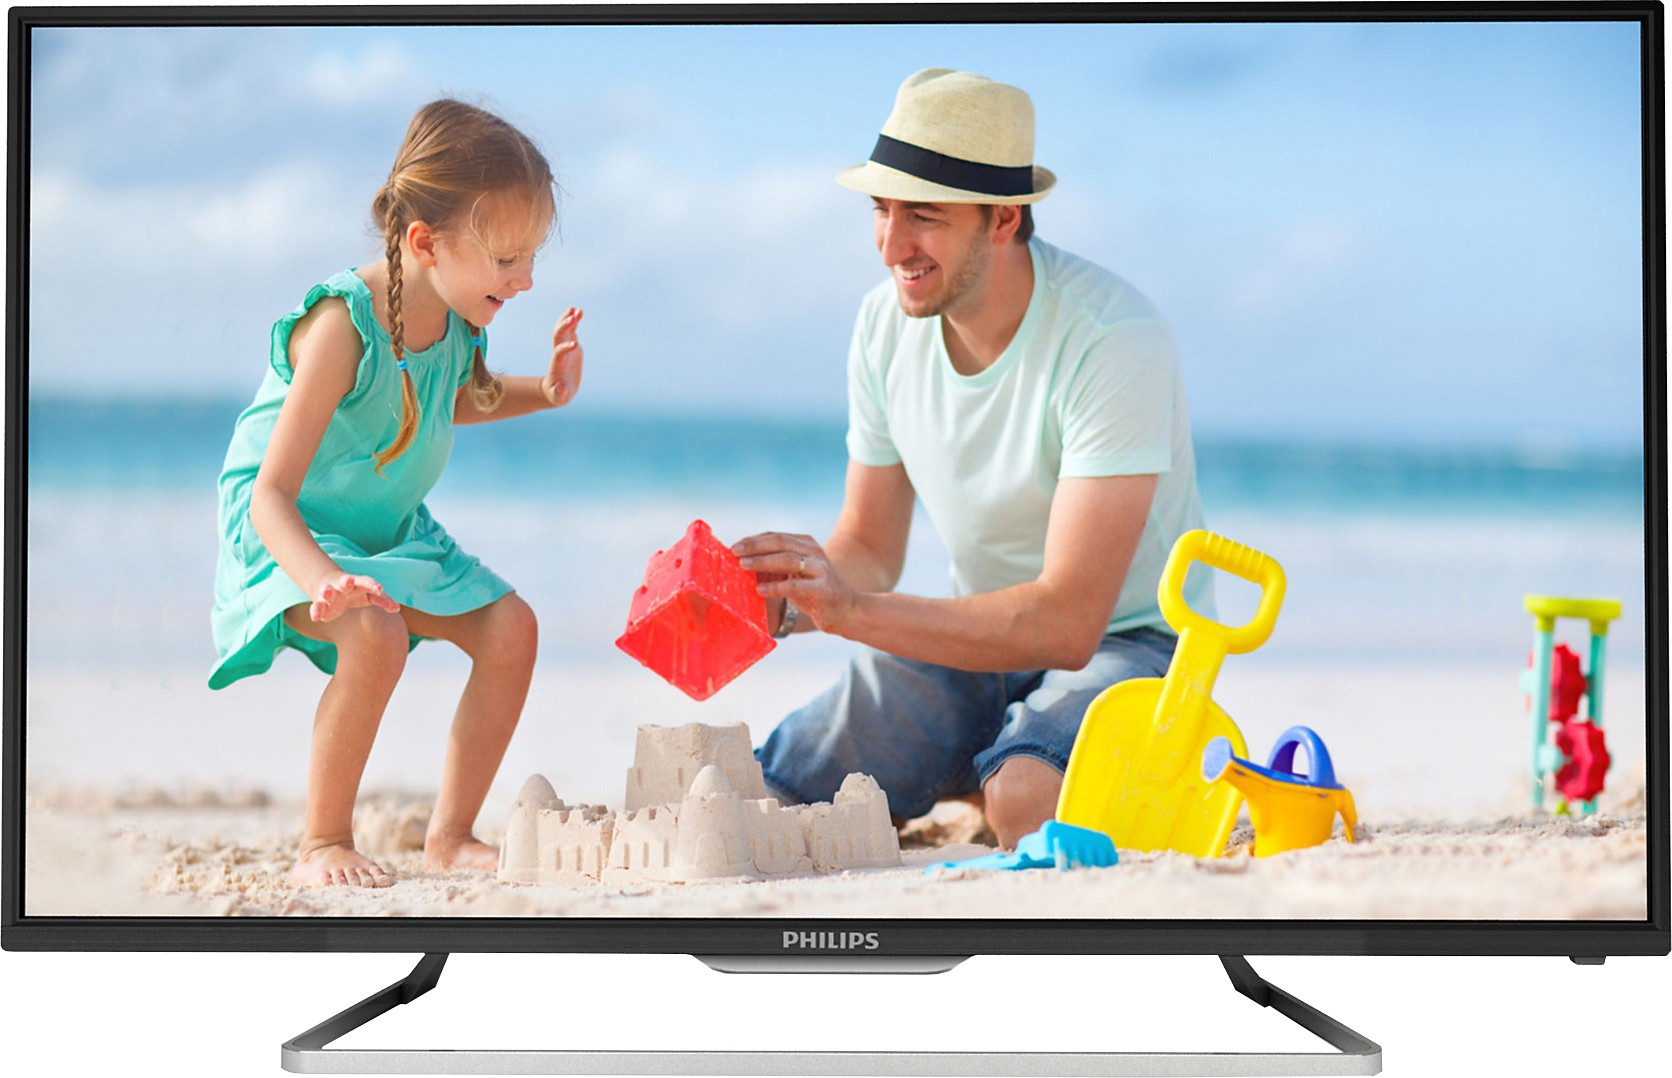 PHILIPS 55PFL5059 55 Inches Full HD LED TV